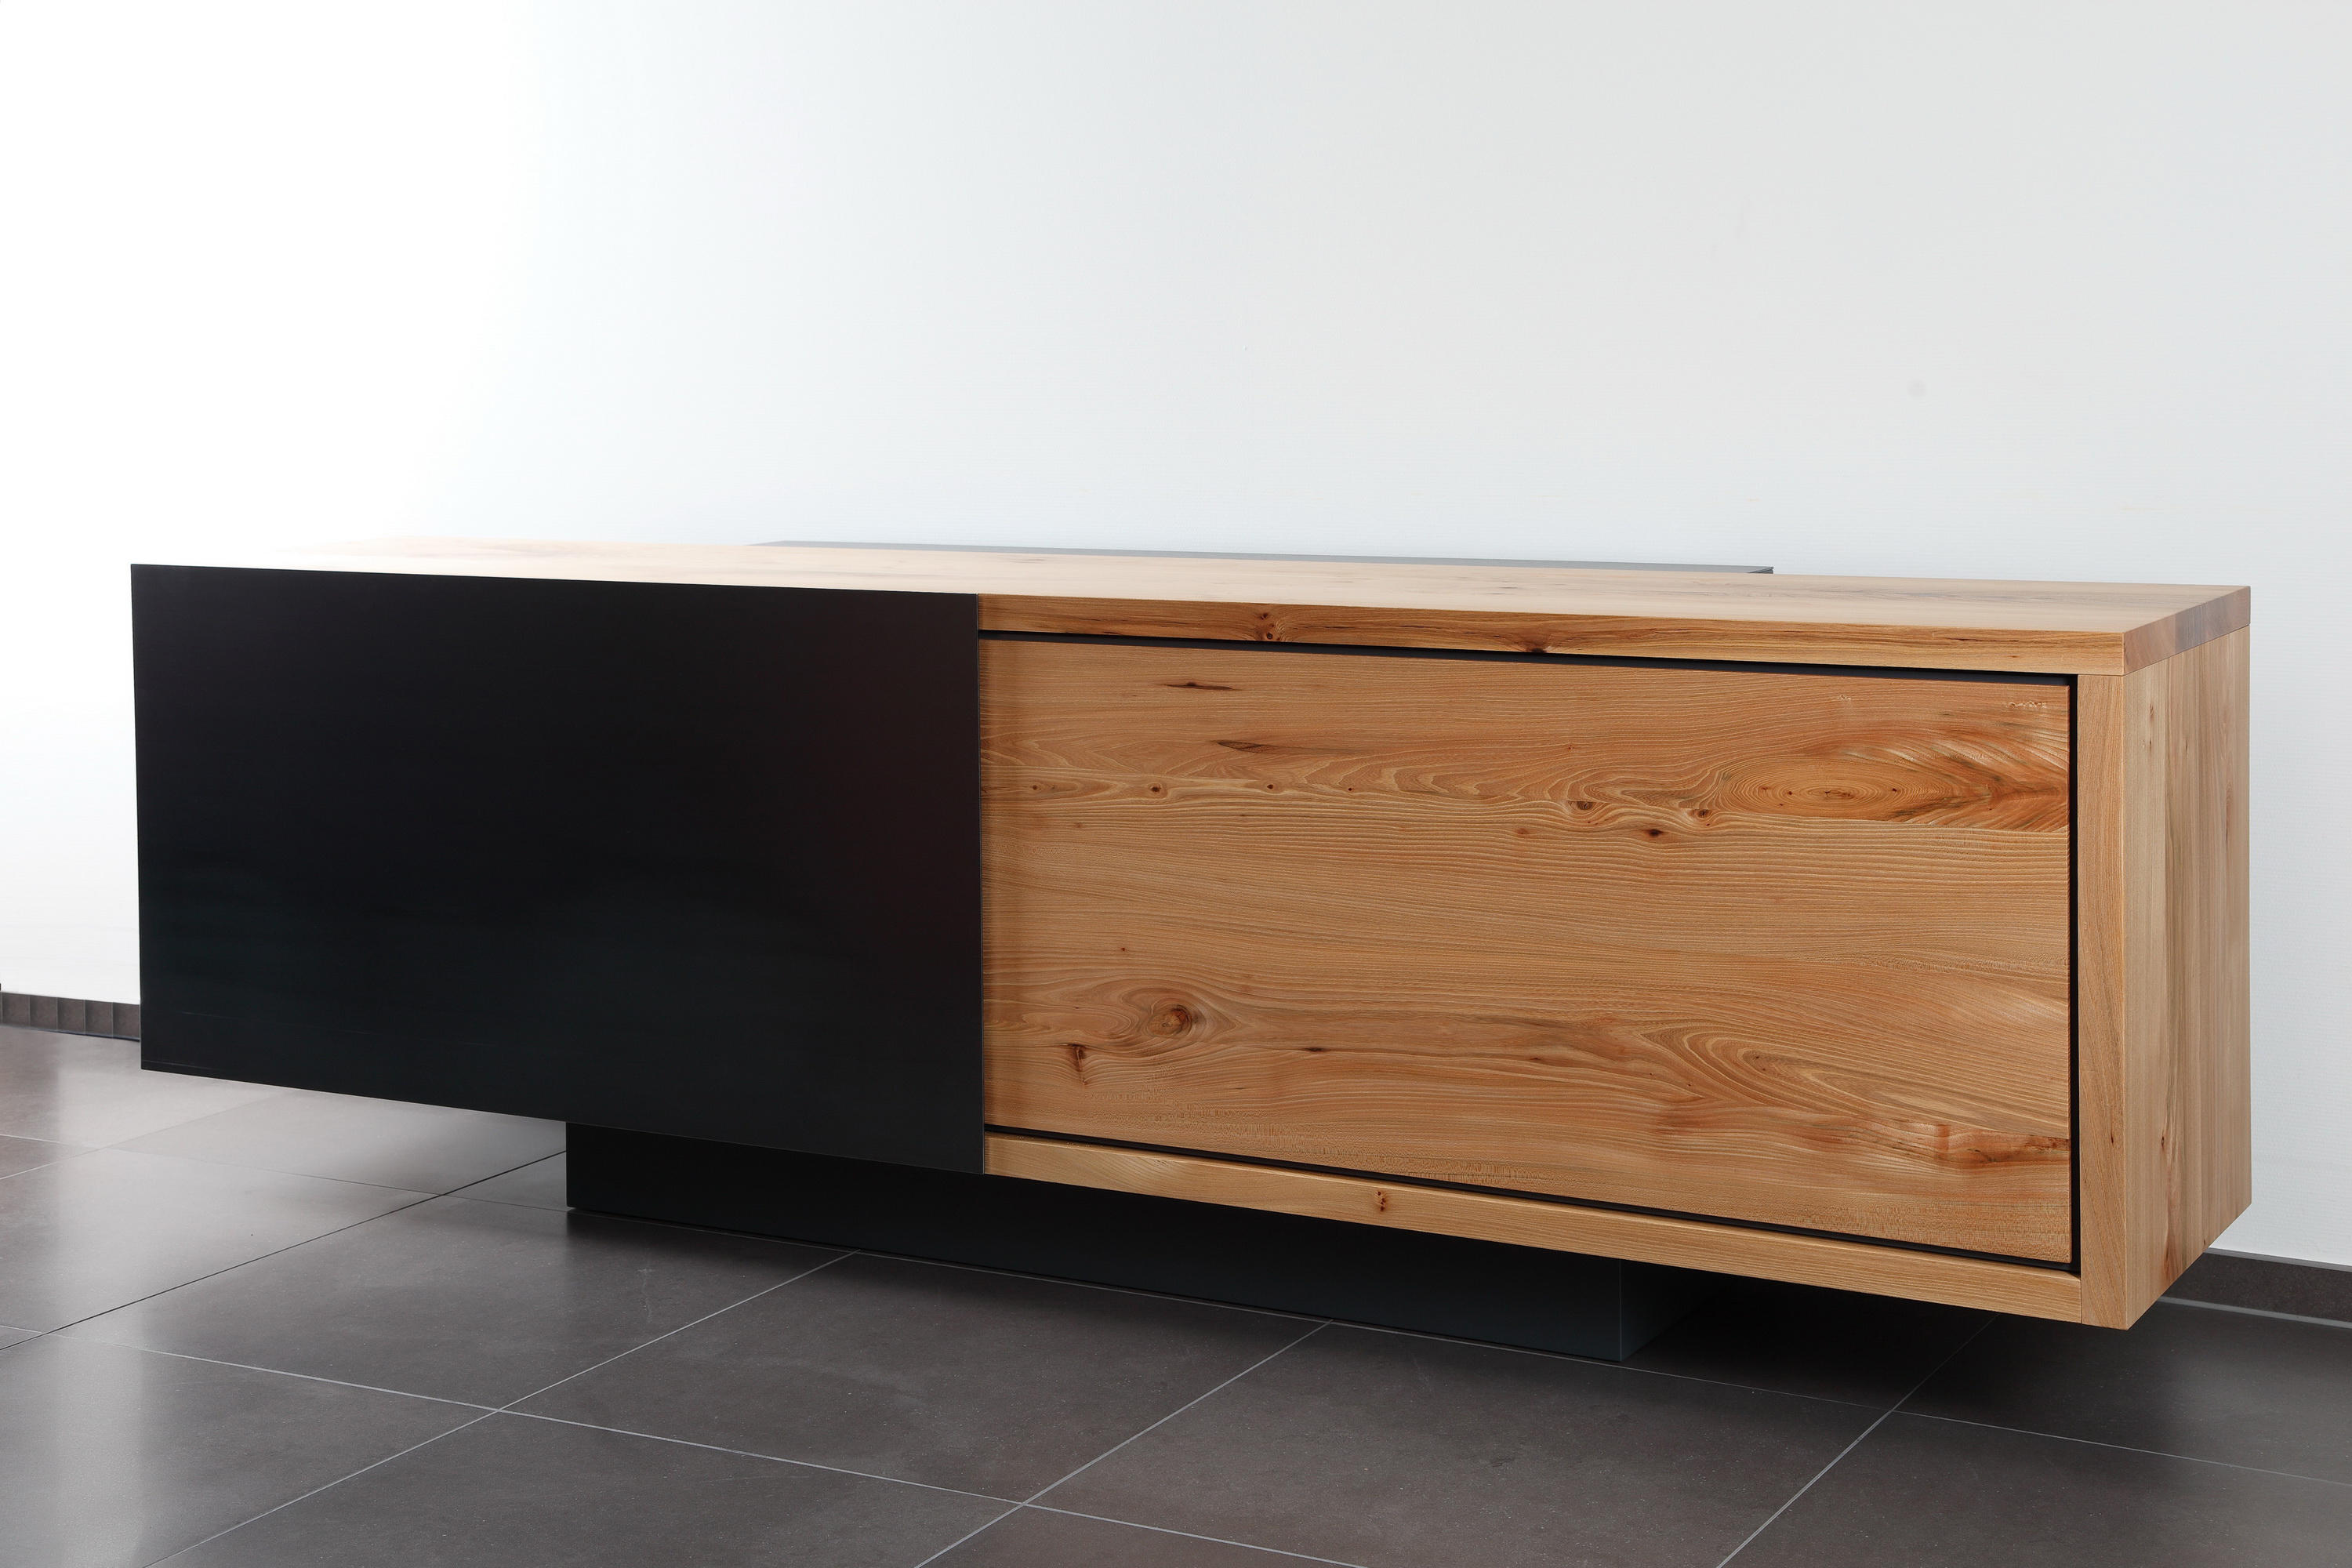 Hifi möbel design  IGN. B2. TV. SIDEBOARD. - Multimedia sideboards from Ign. Design ...